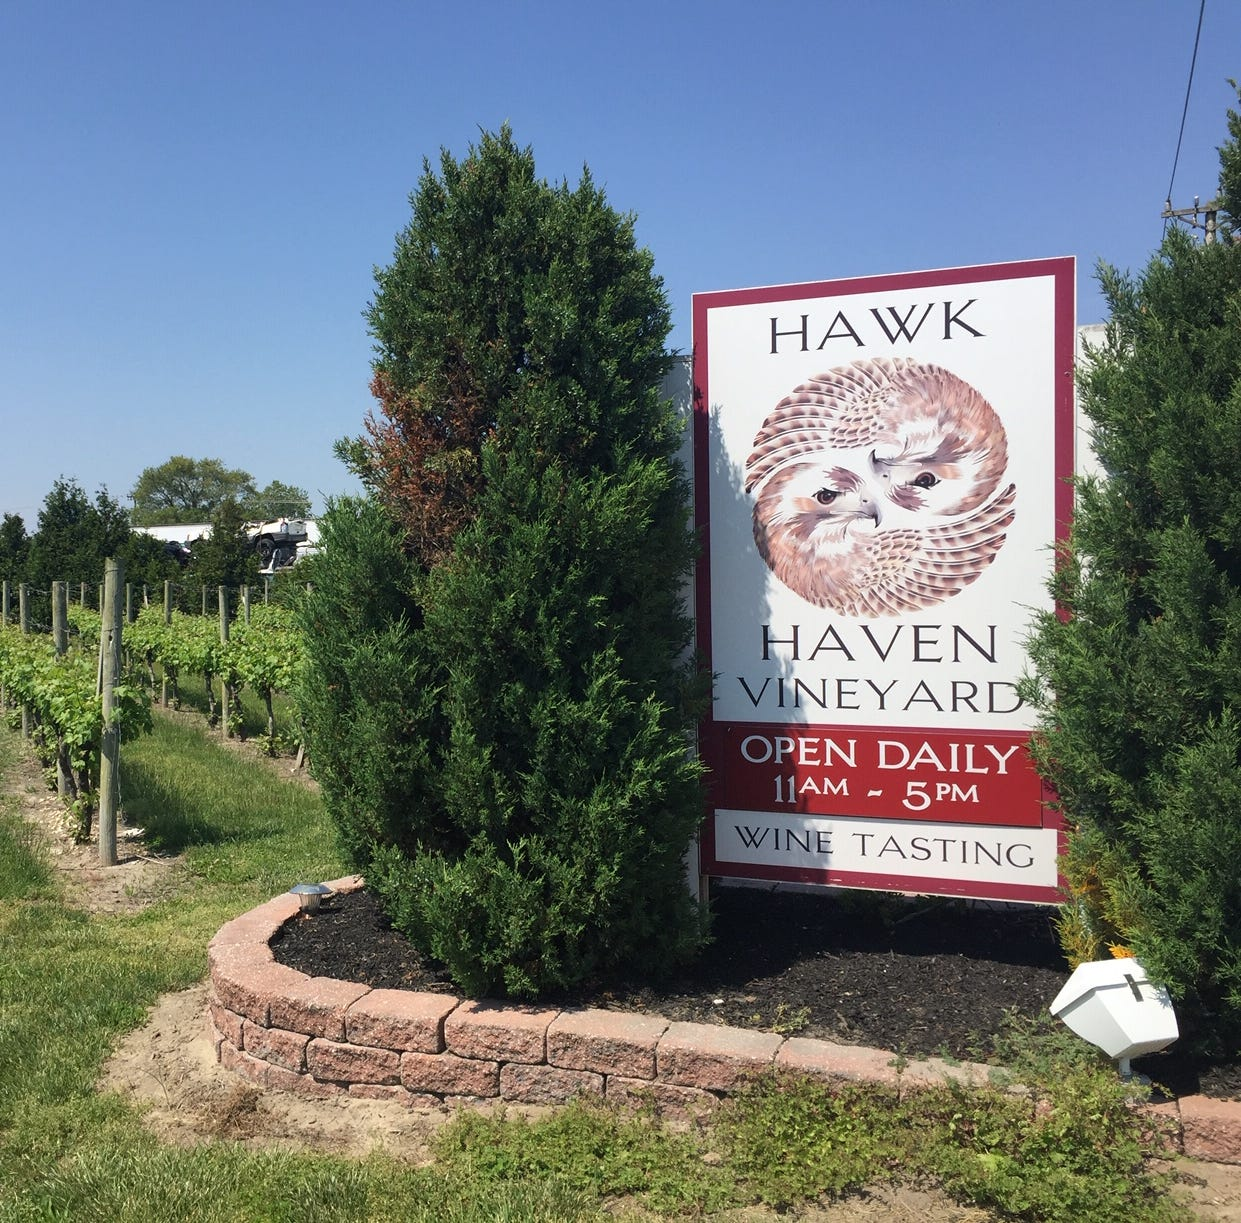 Hawk Haven vineyard celebrates milestone with music, food truck festival